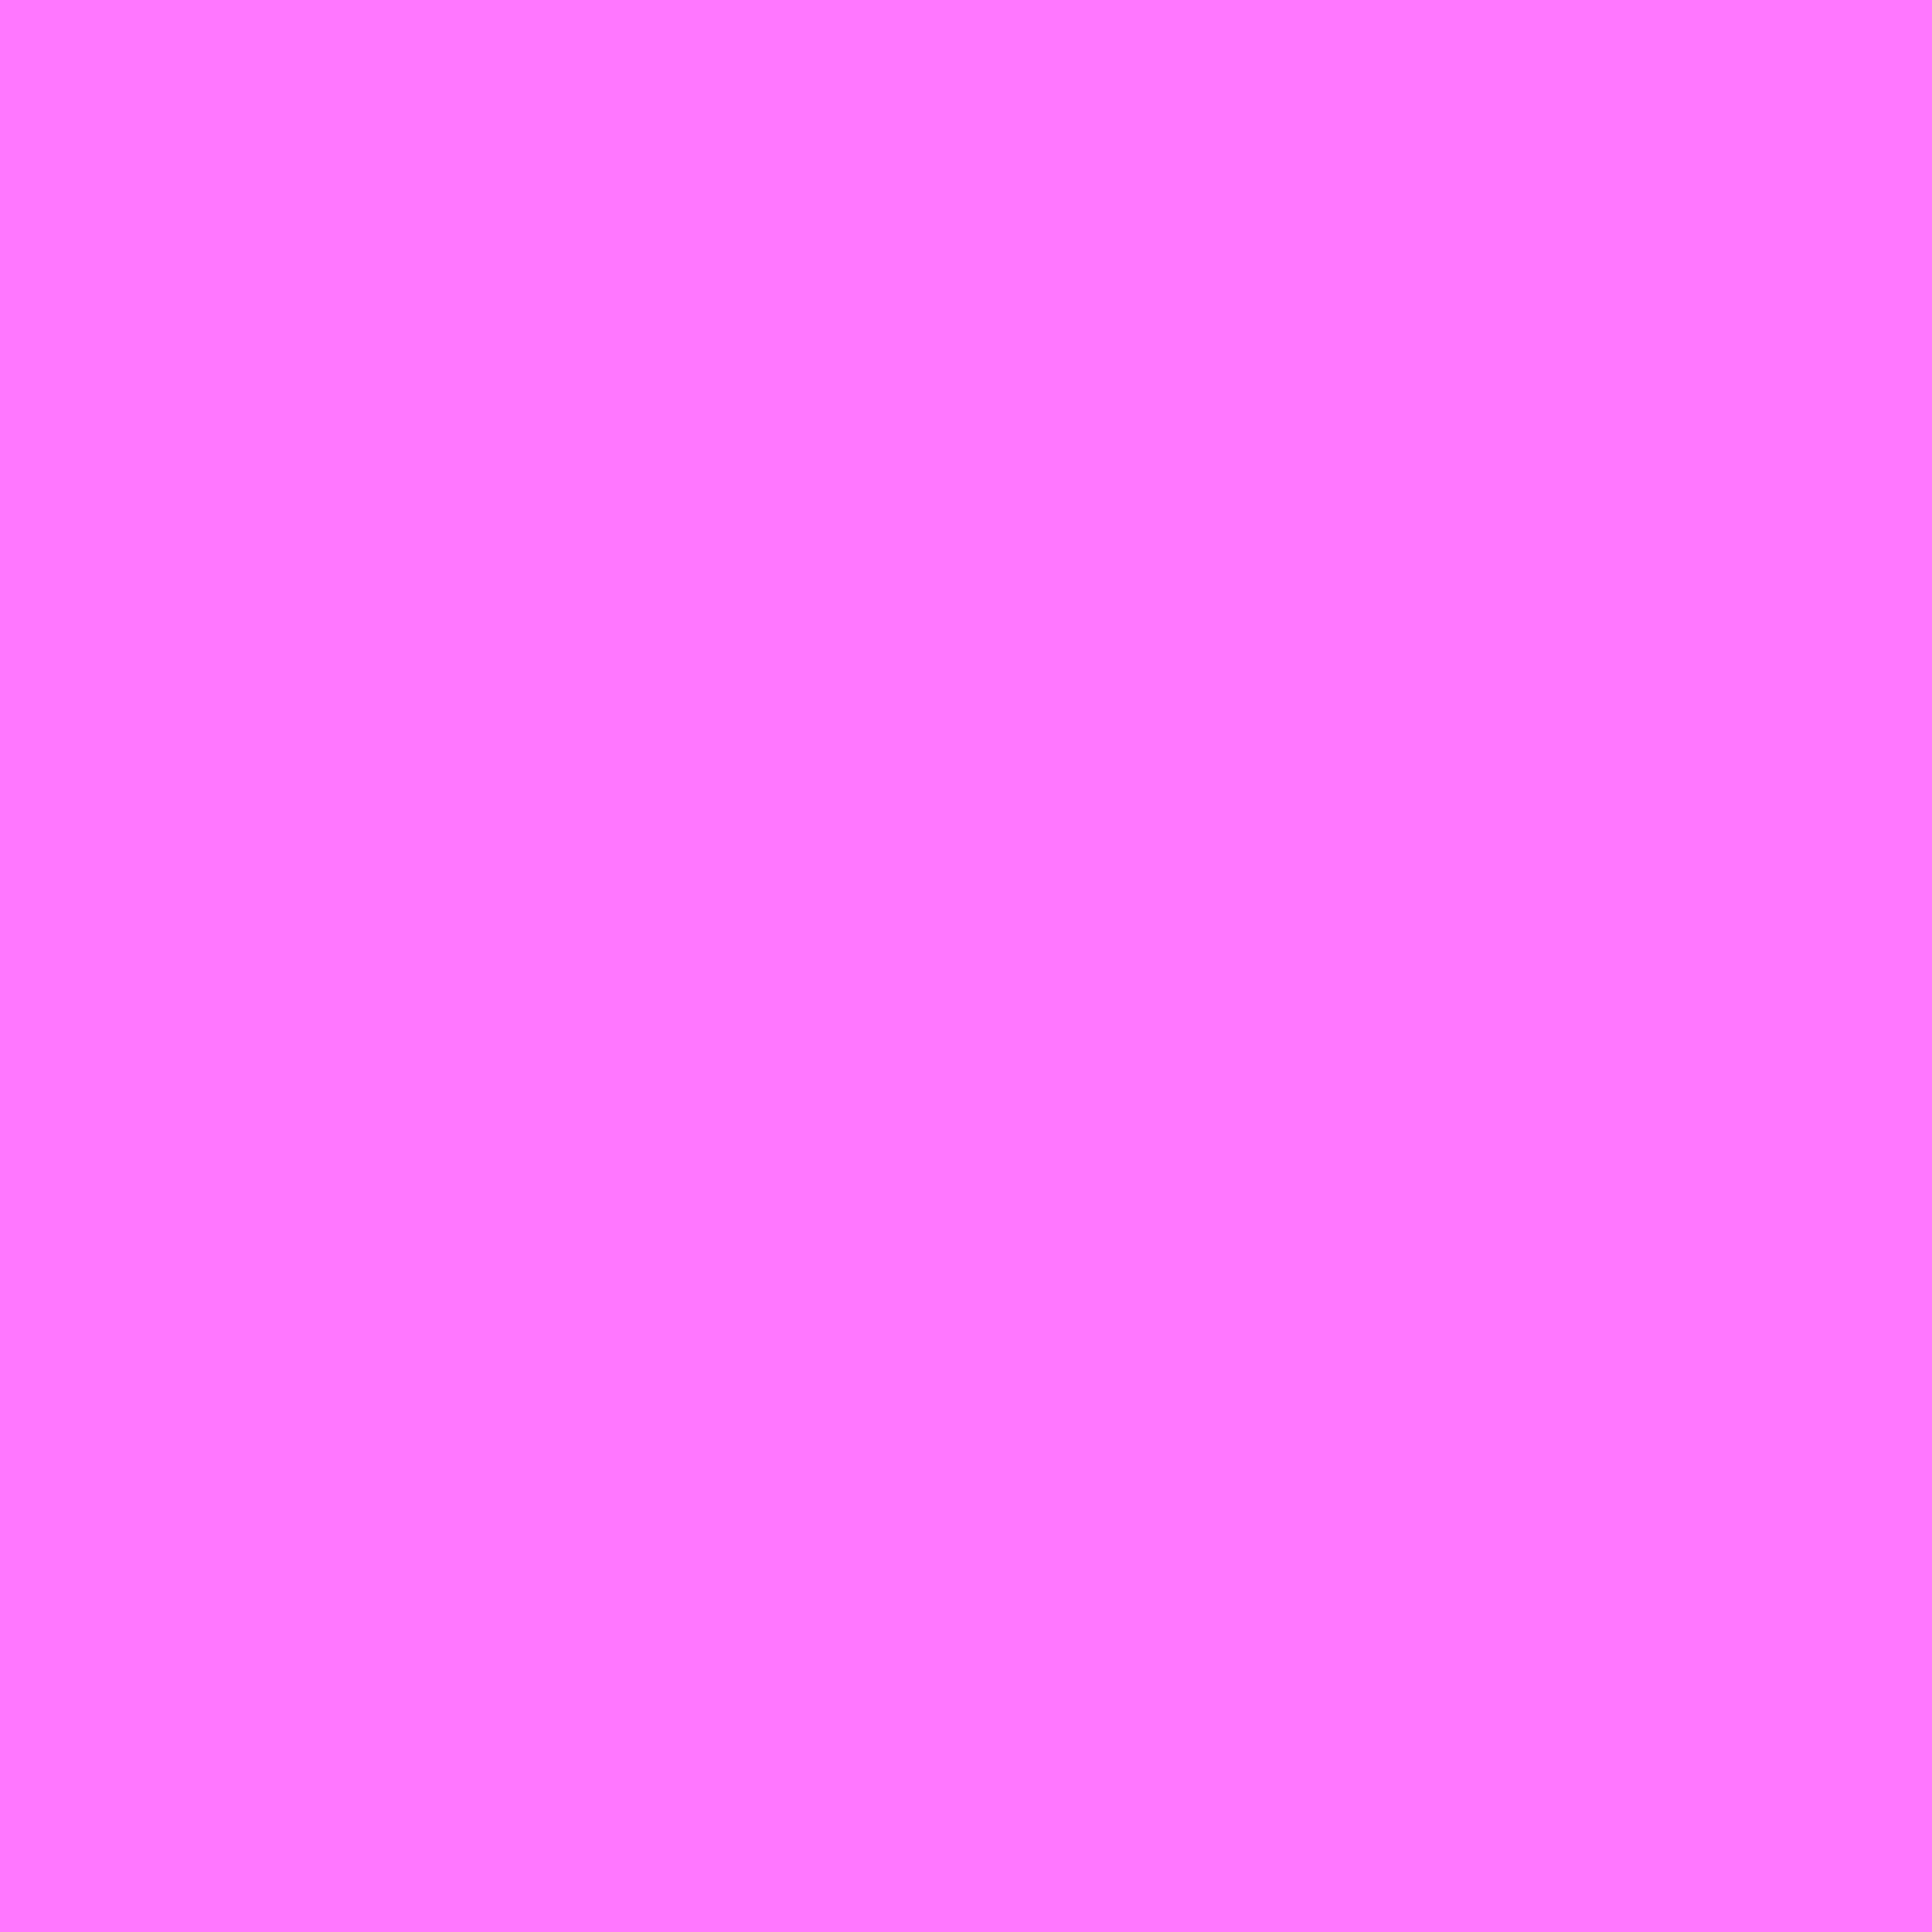 3600x3600 Fuchsia Pink Solid Color Background